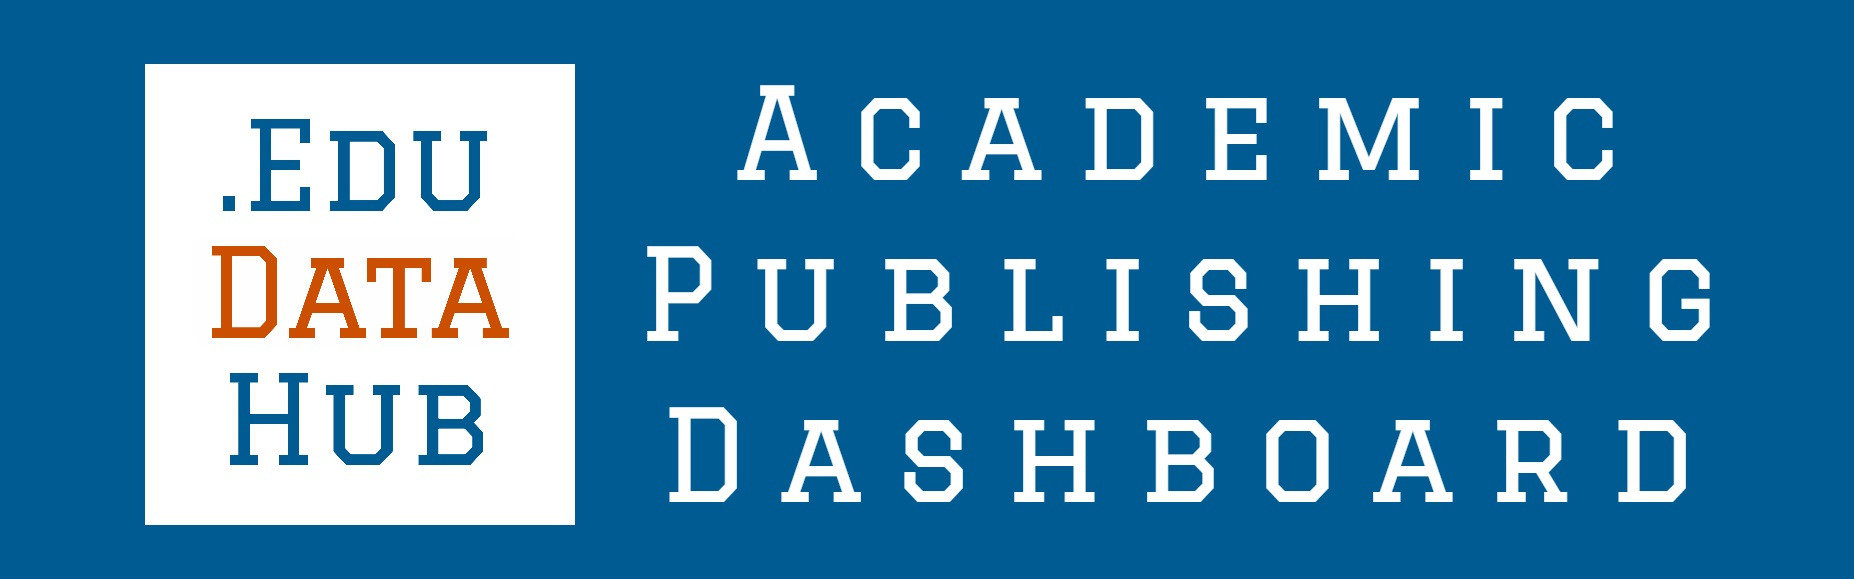 EduDataHub Academic Publishing Dashboard